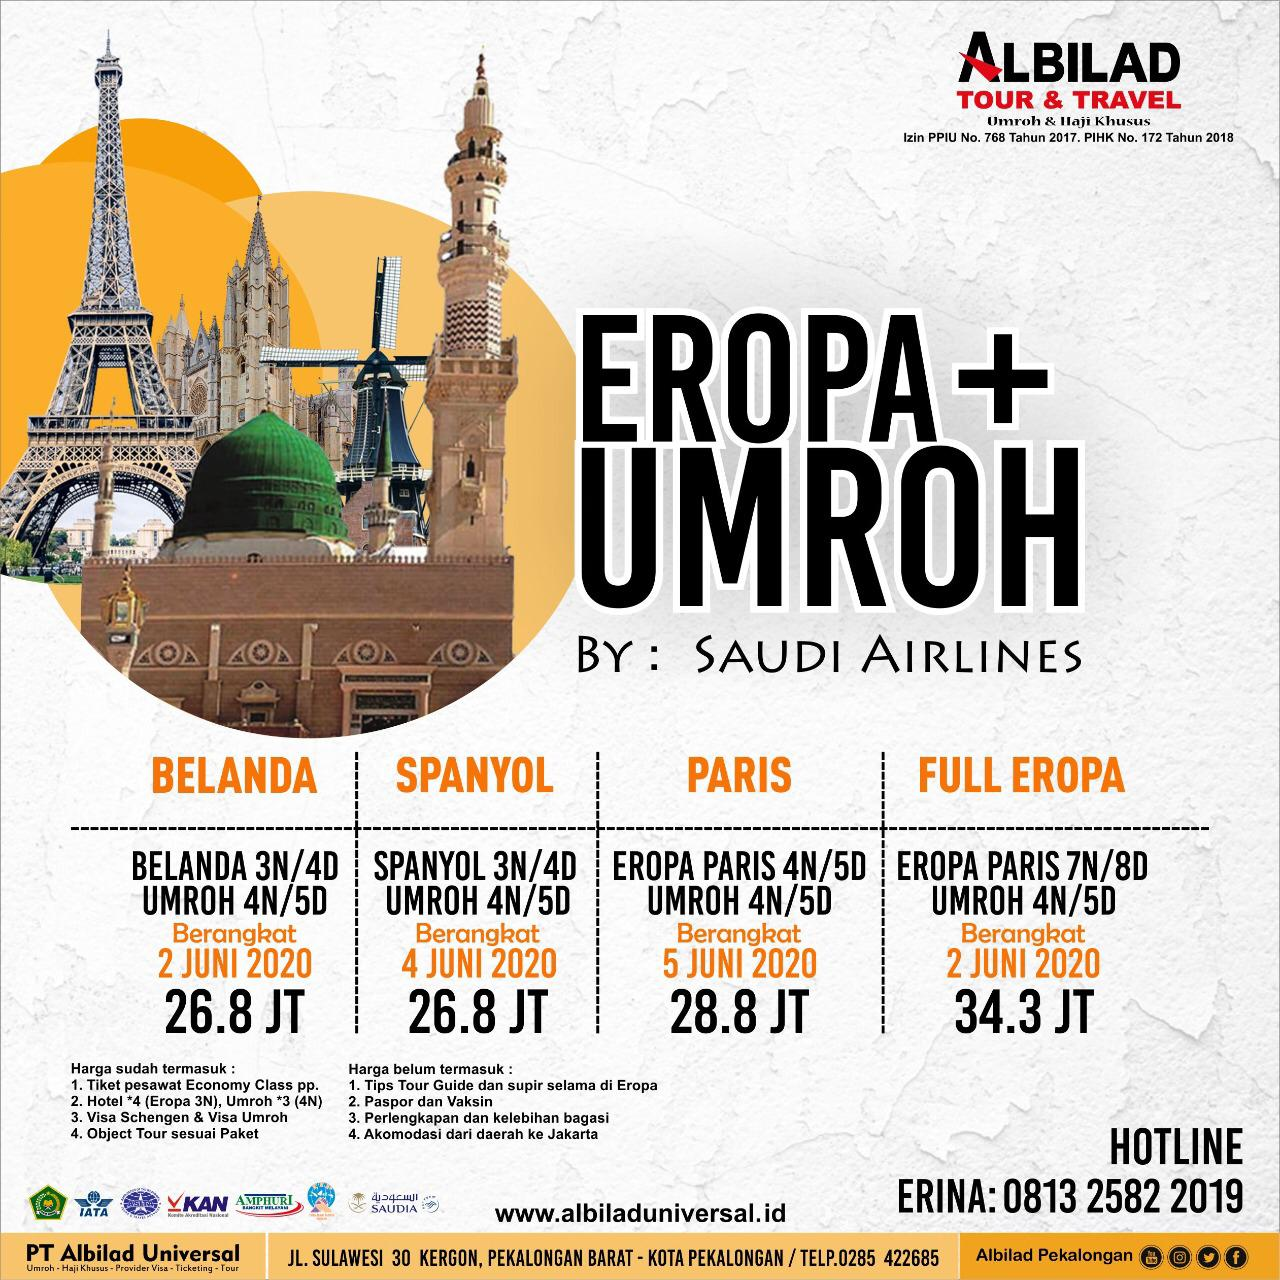 2 Jun 2021 Umroh Plus Full Eropa